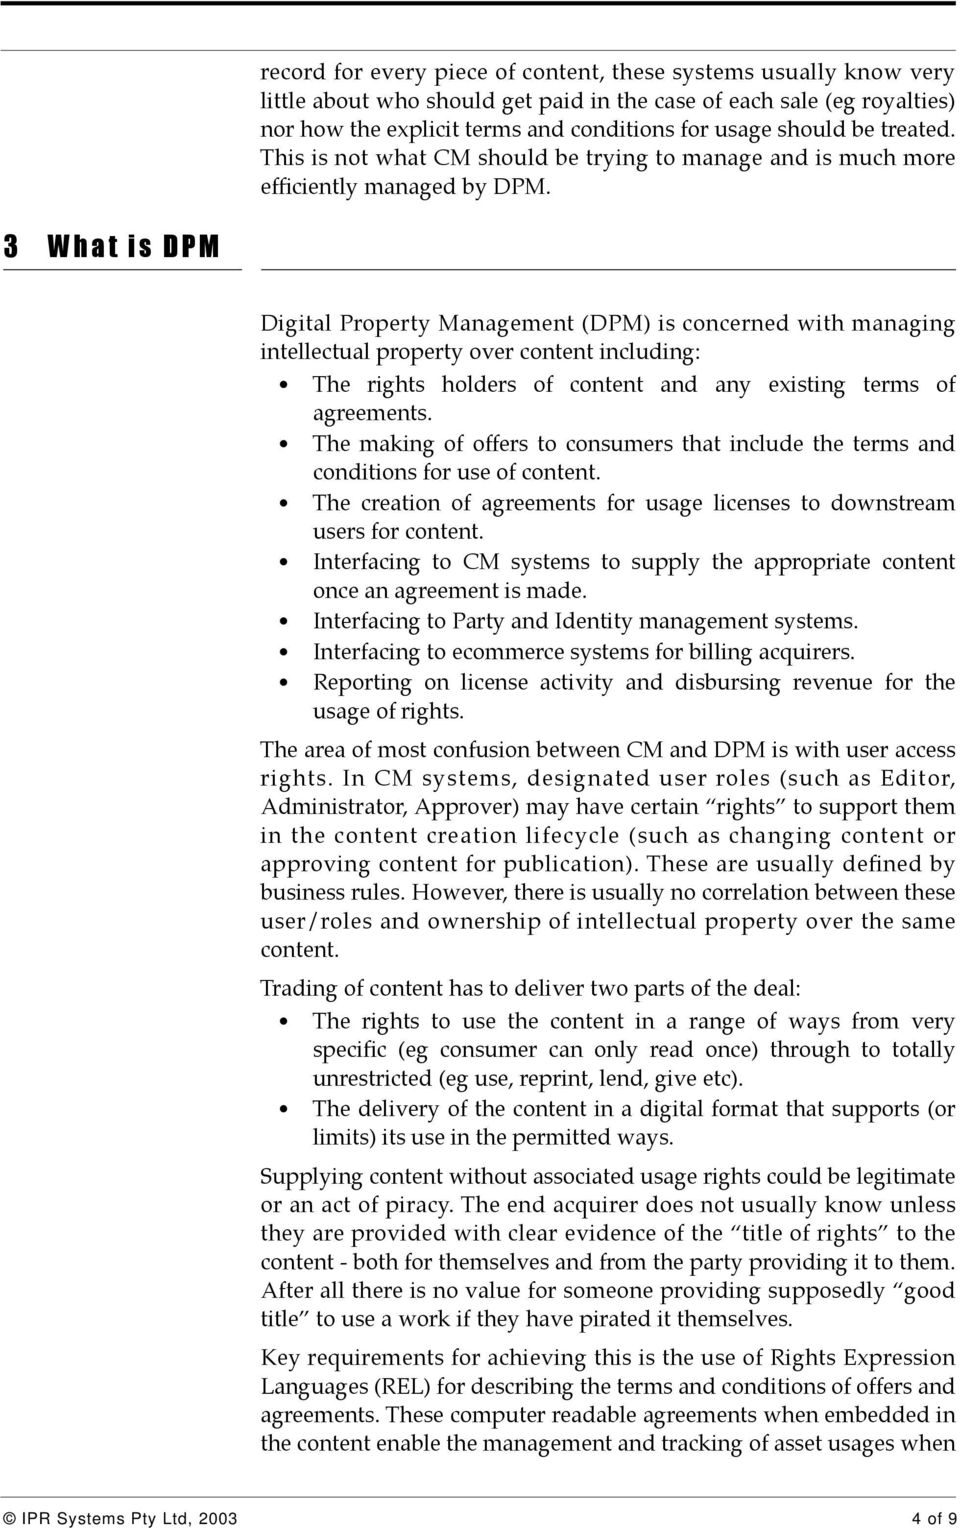 3 What is DPM Digital Property Management (DPM) is concerned with managing intellectual property over content including: The rights holders of content and any existing terms of agreements.